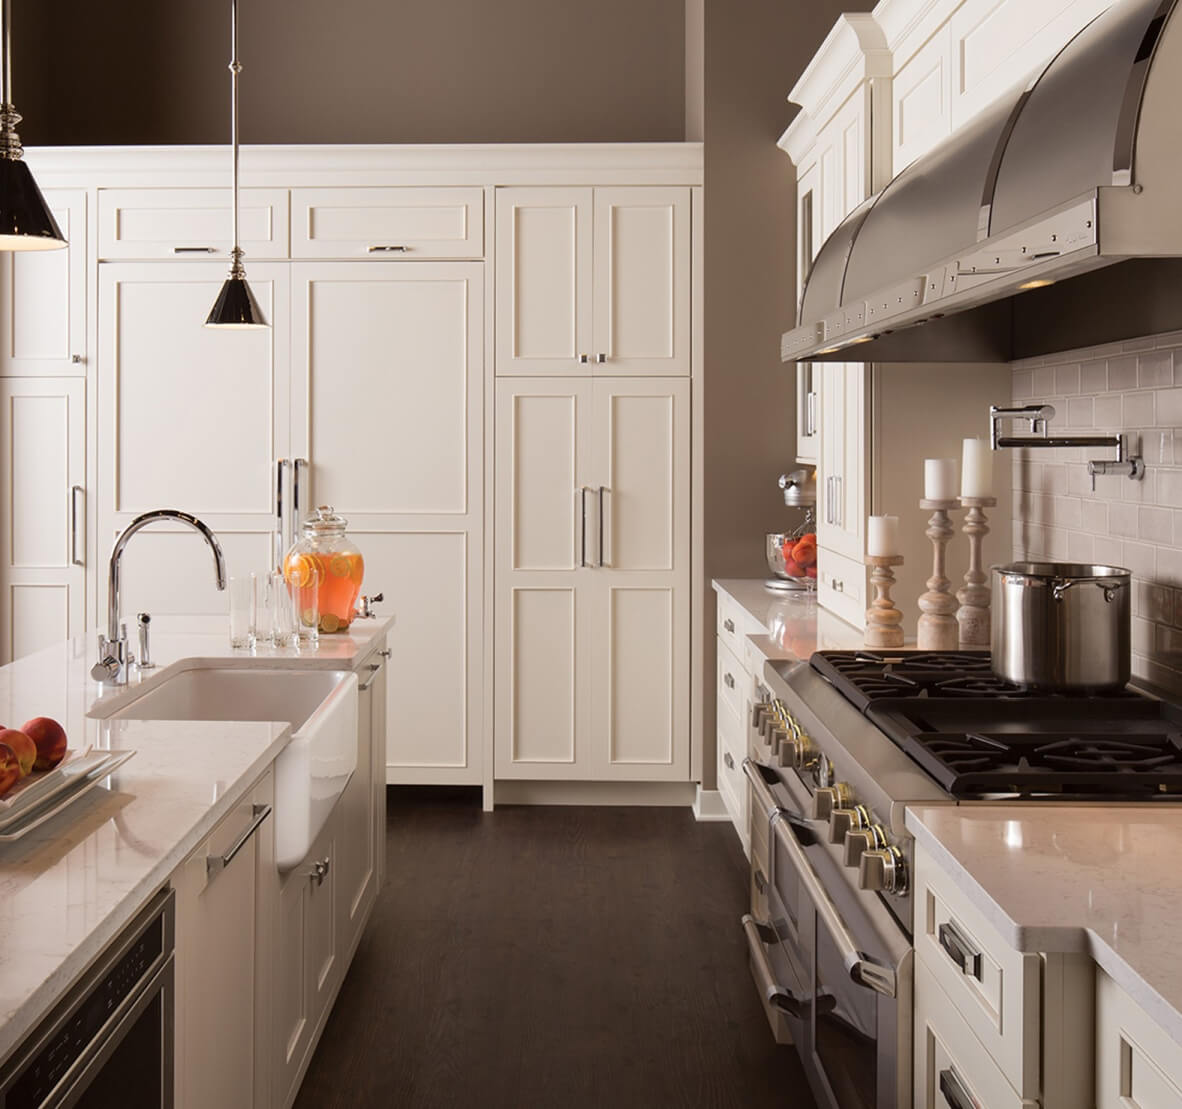 A Storage Wall with Pantries and Refrigeration featuring white painted Dura Supreme Cabinetry.